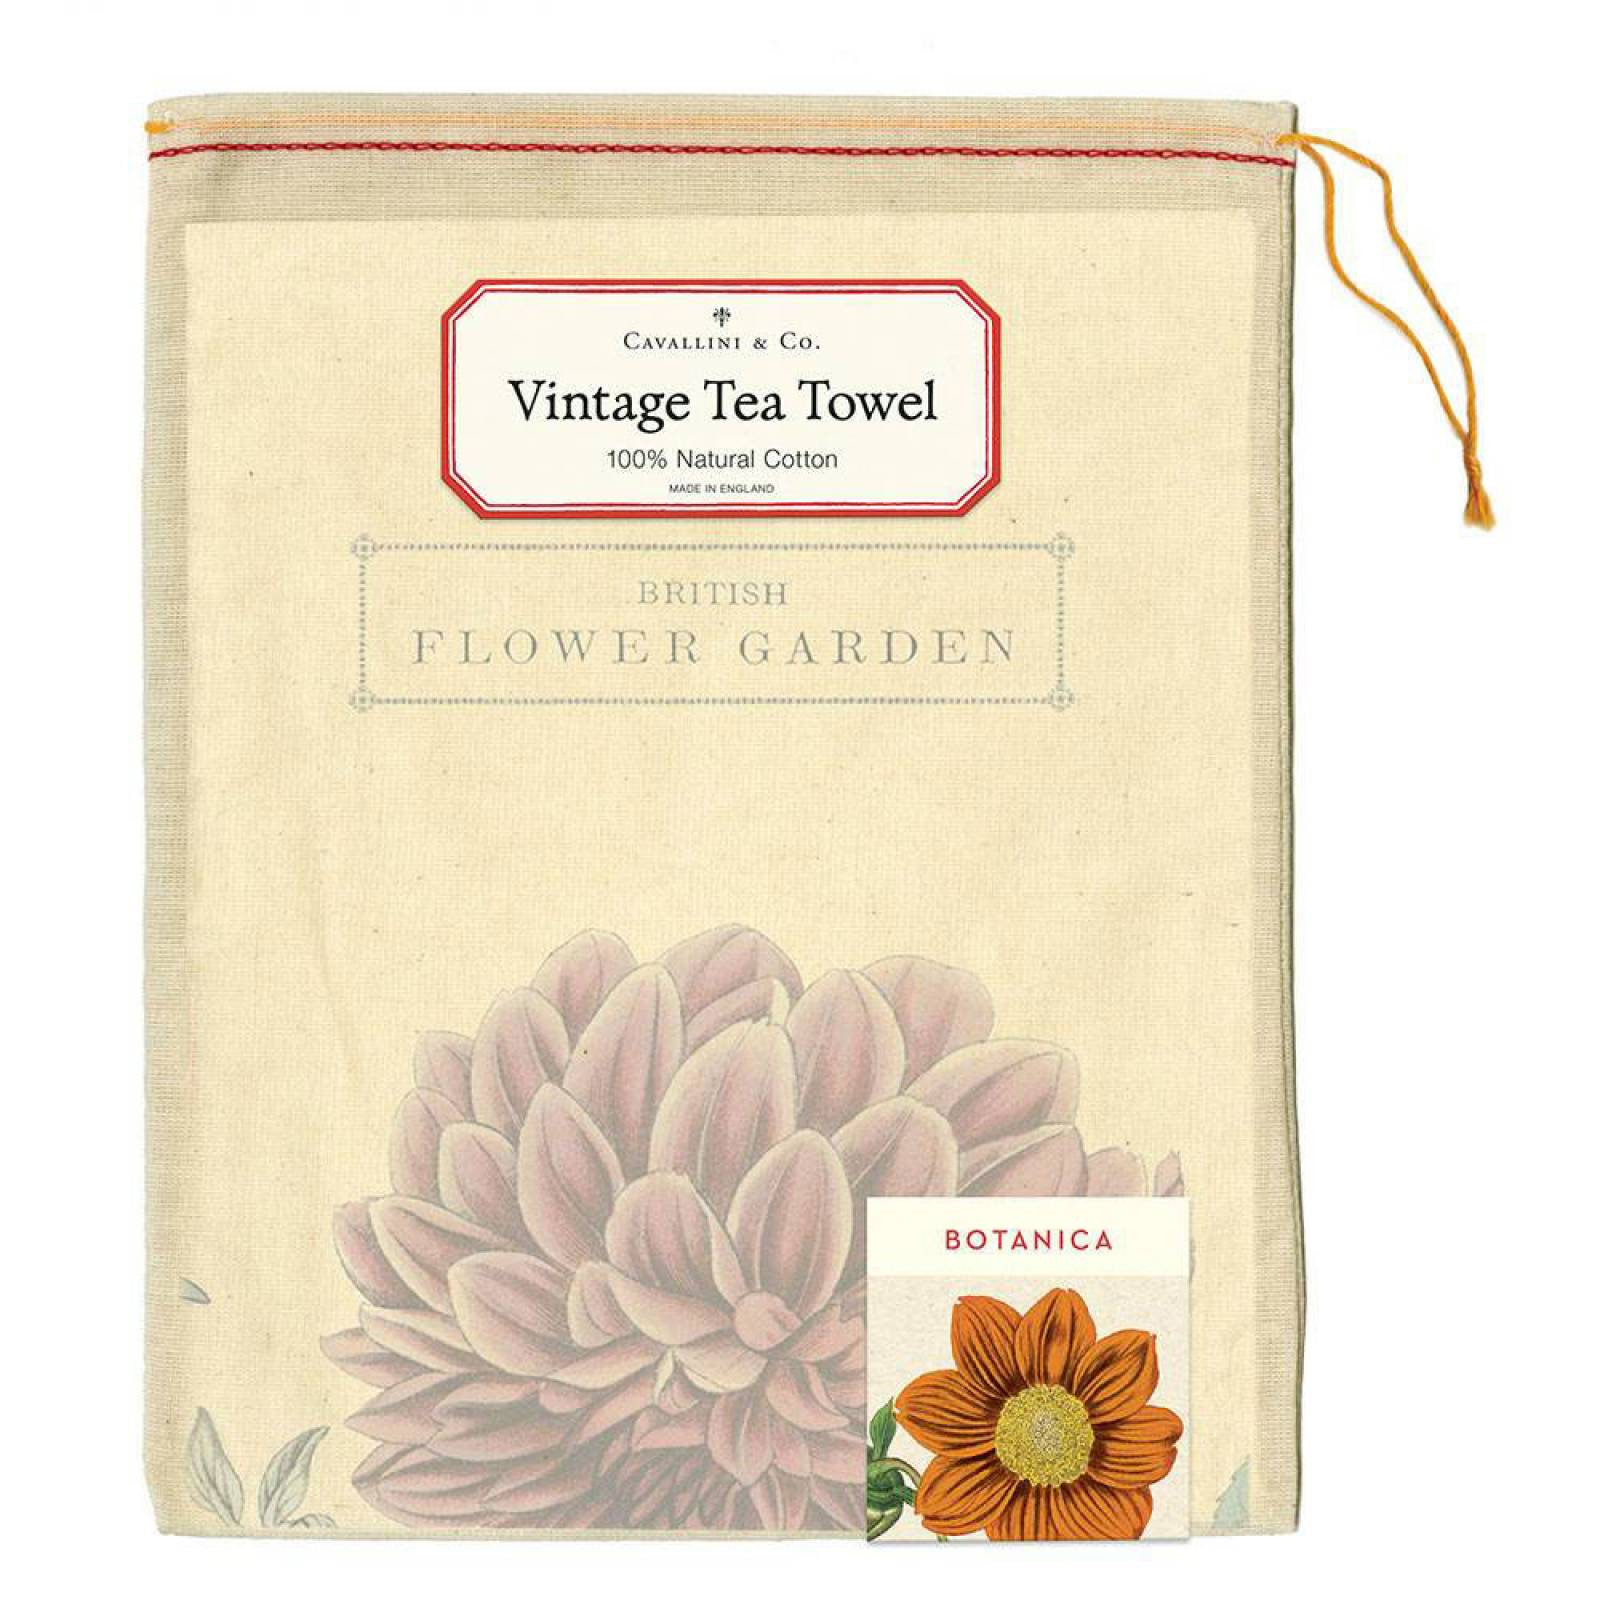 Botanica Garden Flowers Cotton Tea Towel With Gift Bag thumbnails